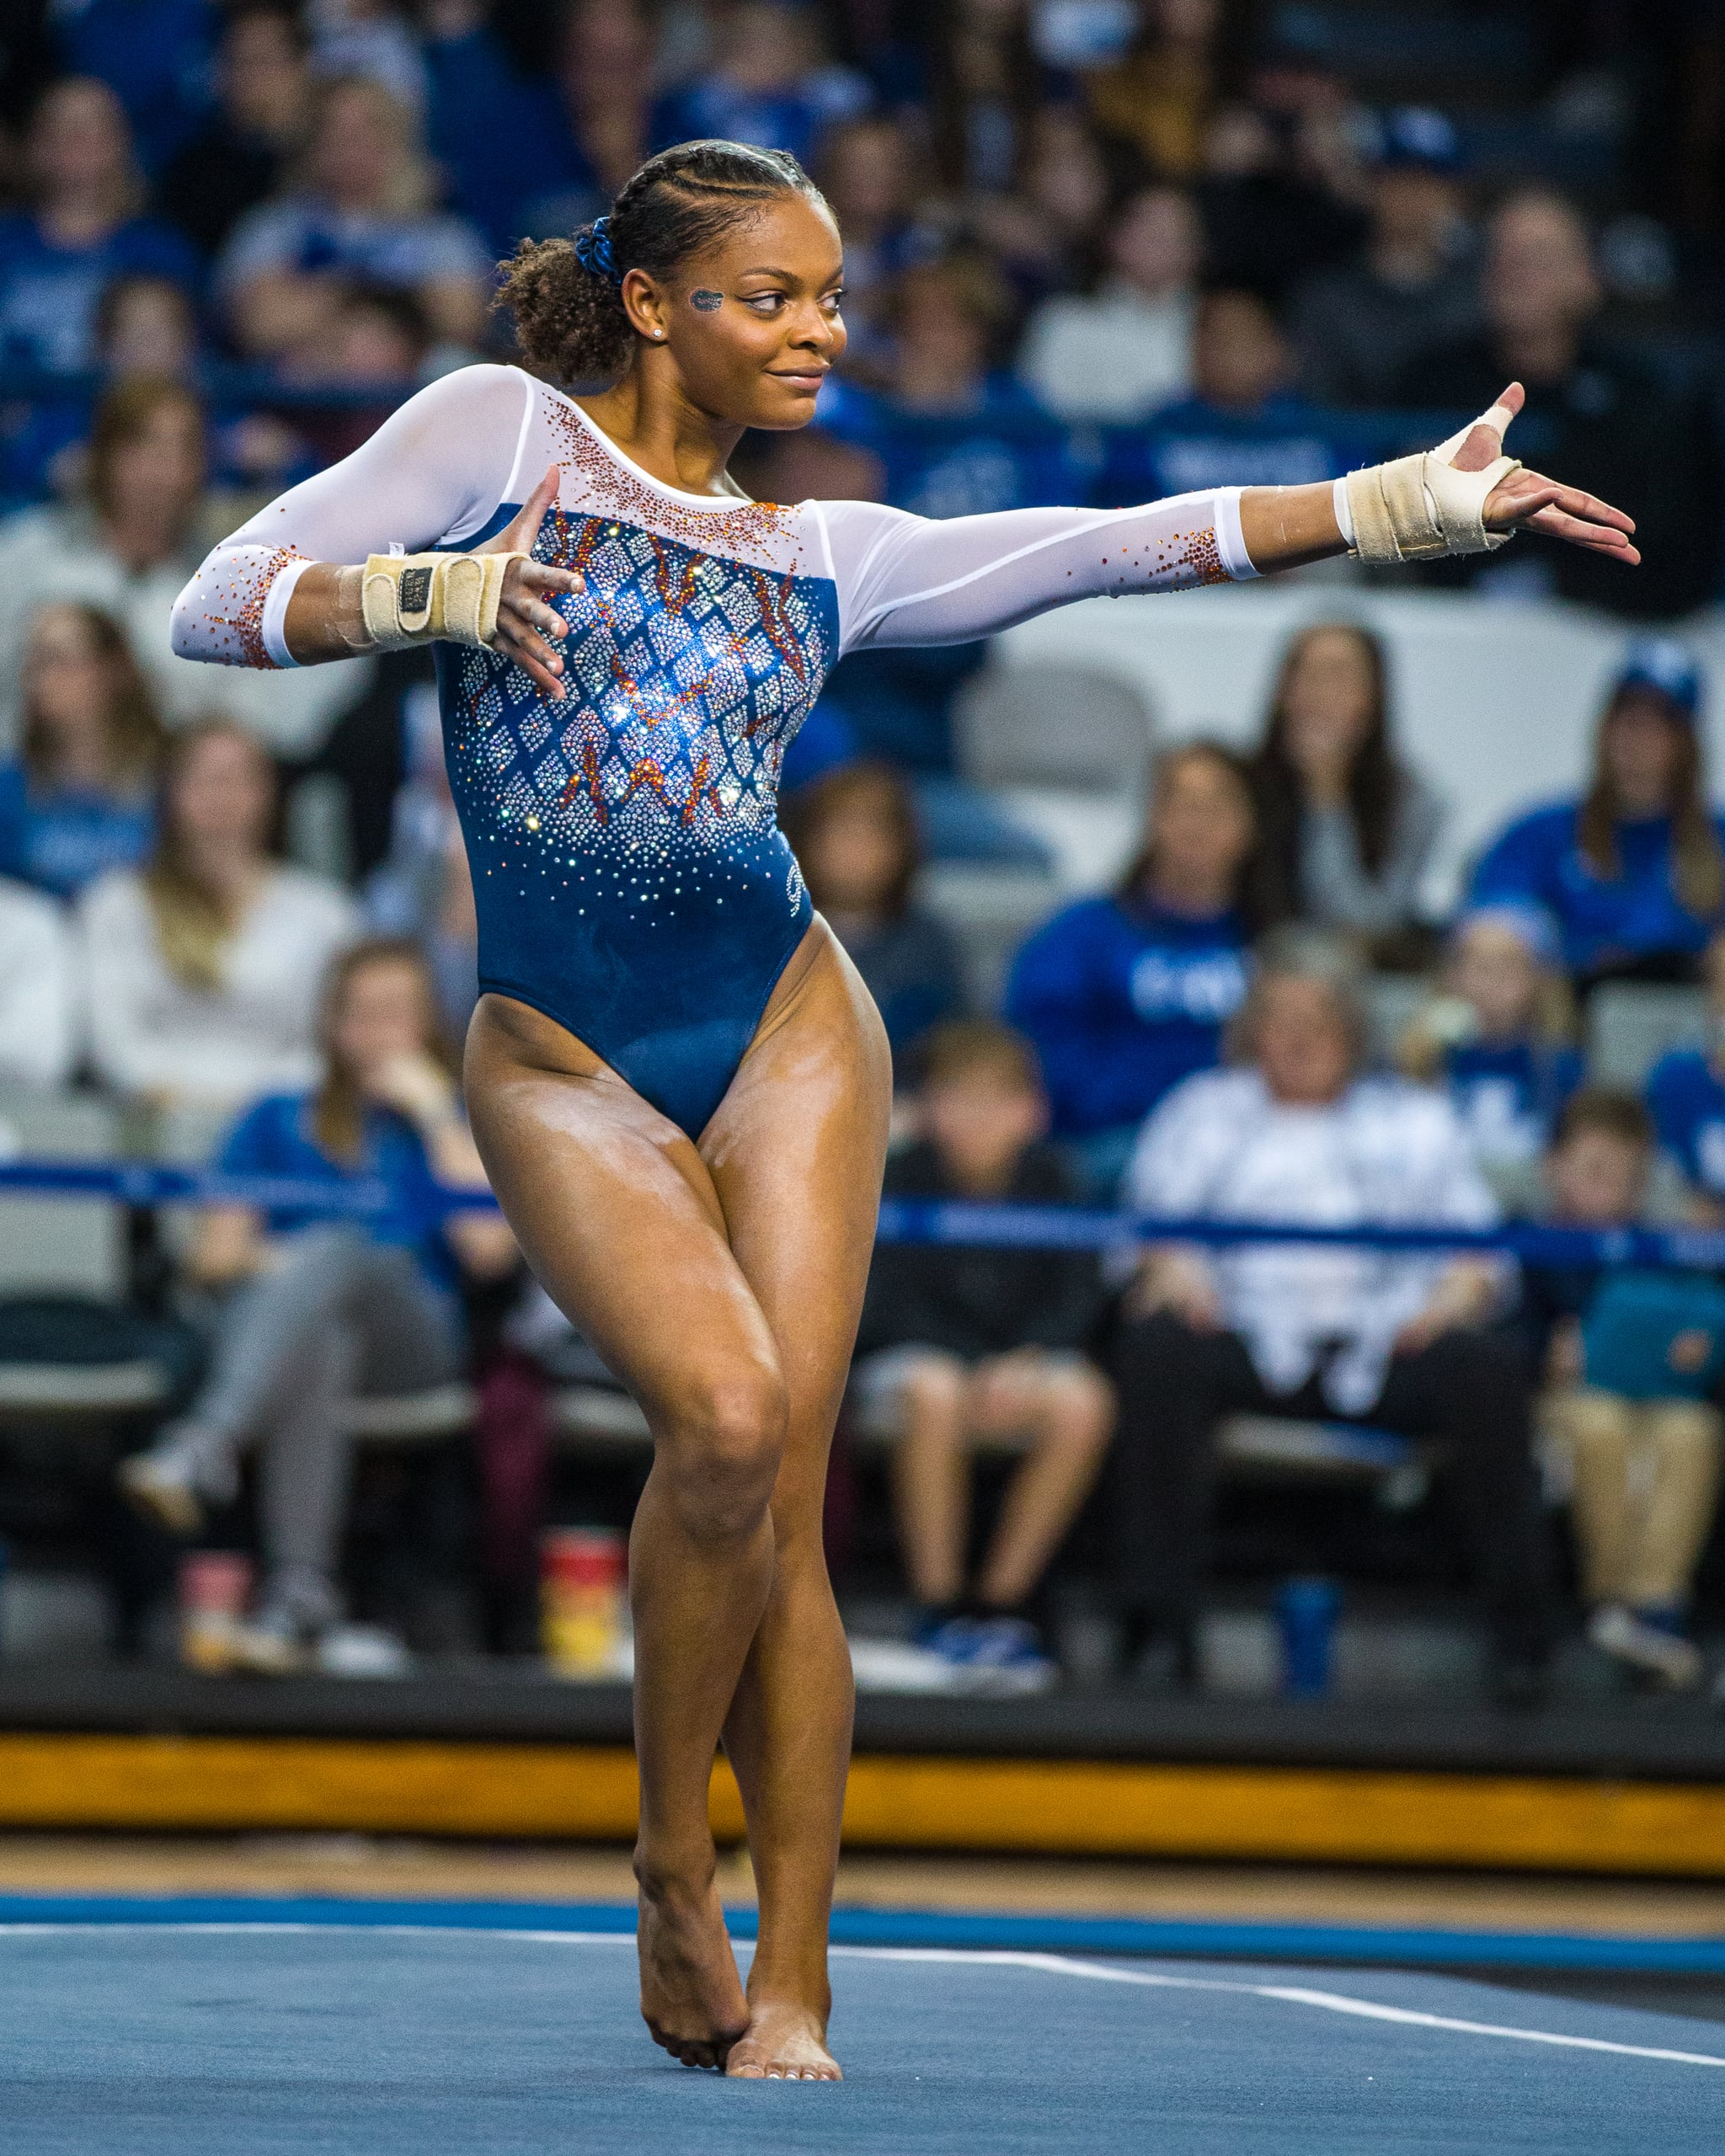 Trinity Thomas2020 Gator GymnasticsUniversity of FloridaJan. 31, 2020 - No. 2 Florida 197.80, No. 12 Kentucky 196.60